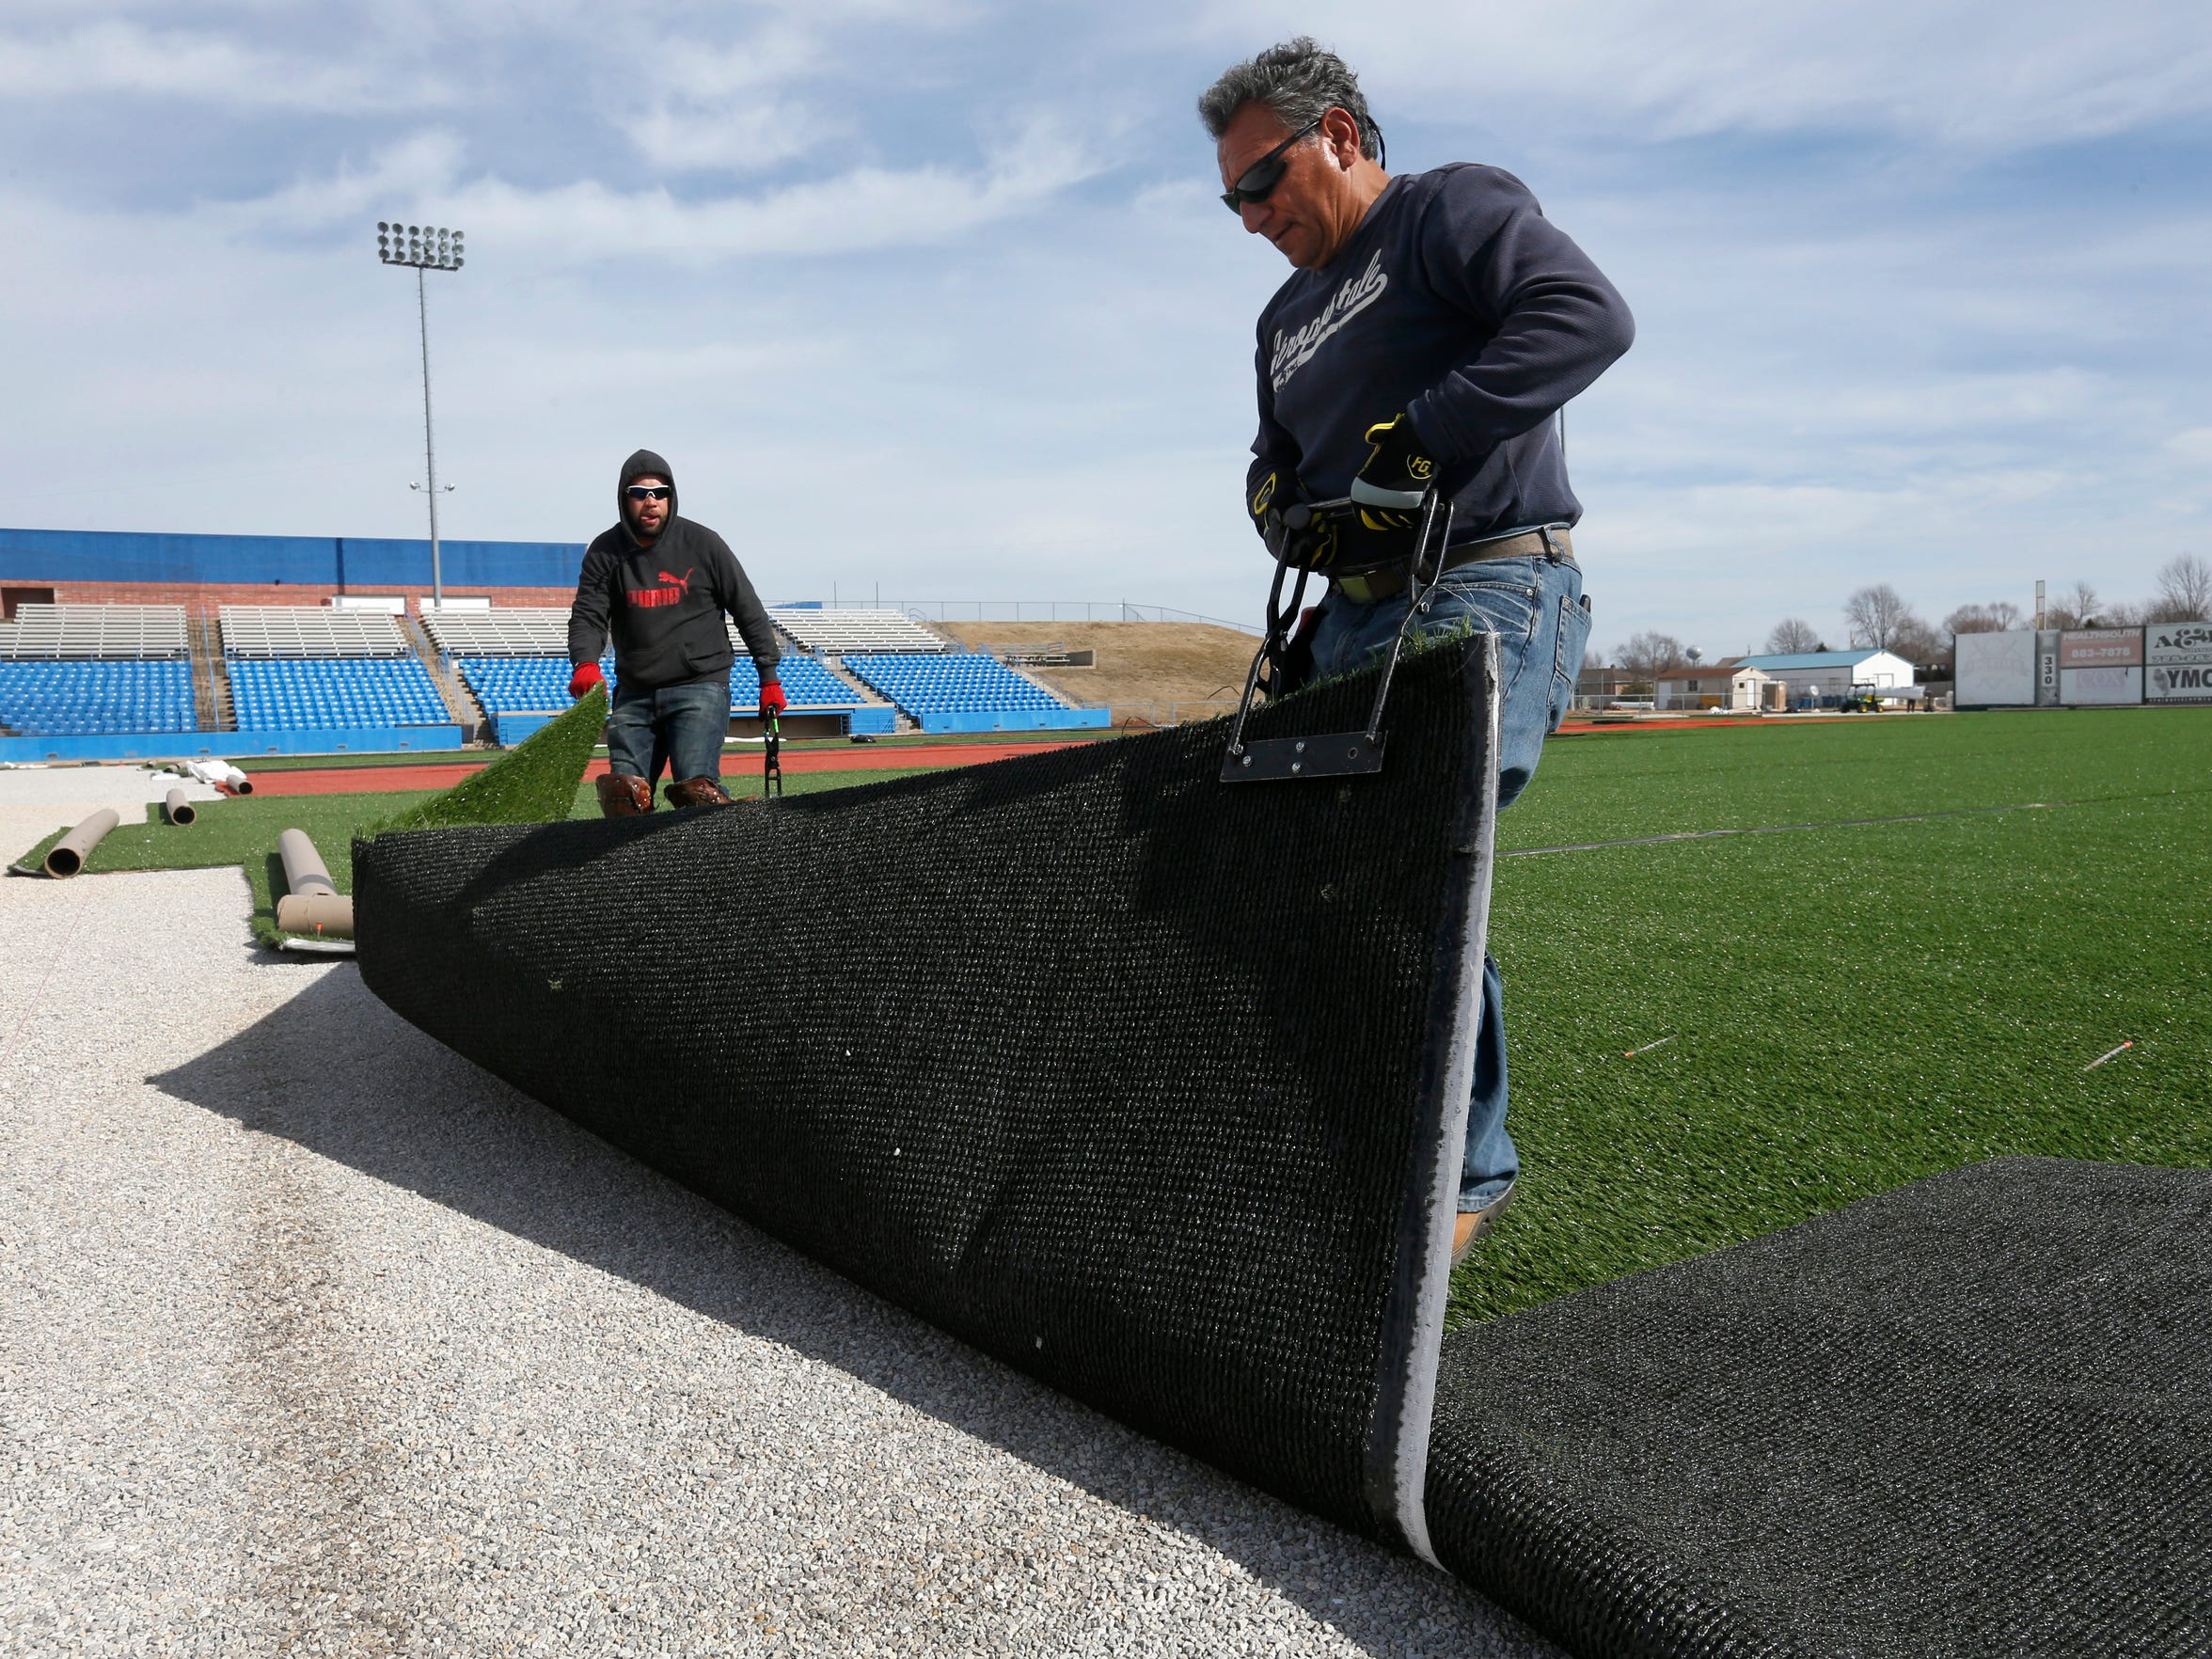 Juan Mariscal, right, and Juan Valdiva, both of Sports Construction Management, lift the edges of artificial turf to make room for a new section while installing the new field at Duck's Stadium in Ozark on Thursday, Feb. 18, 2016.